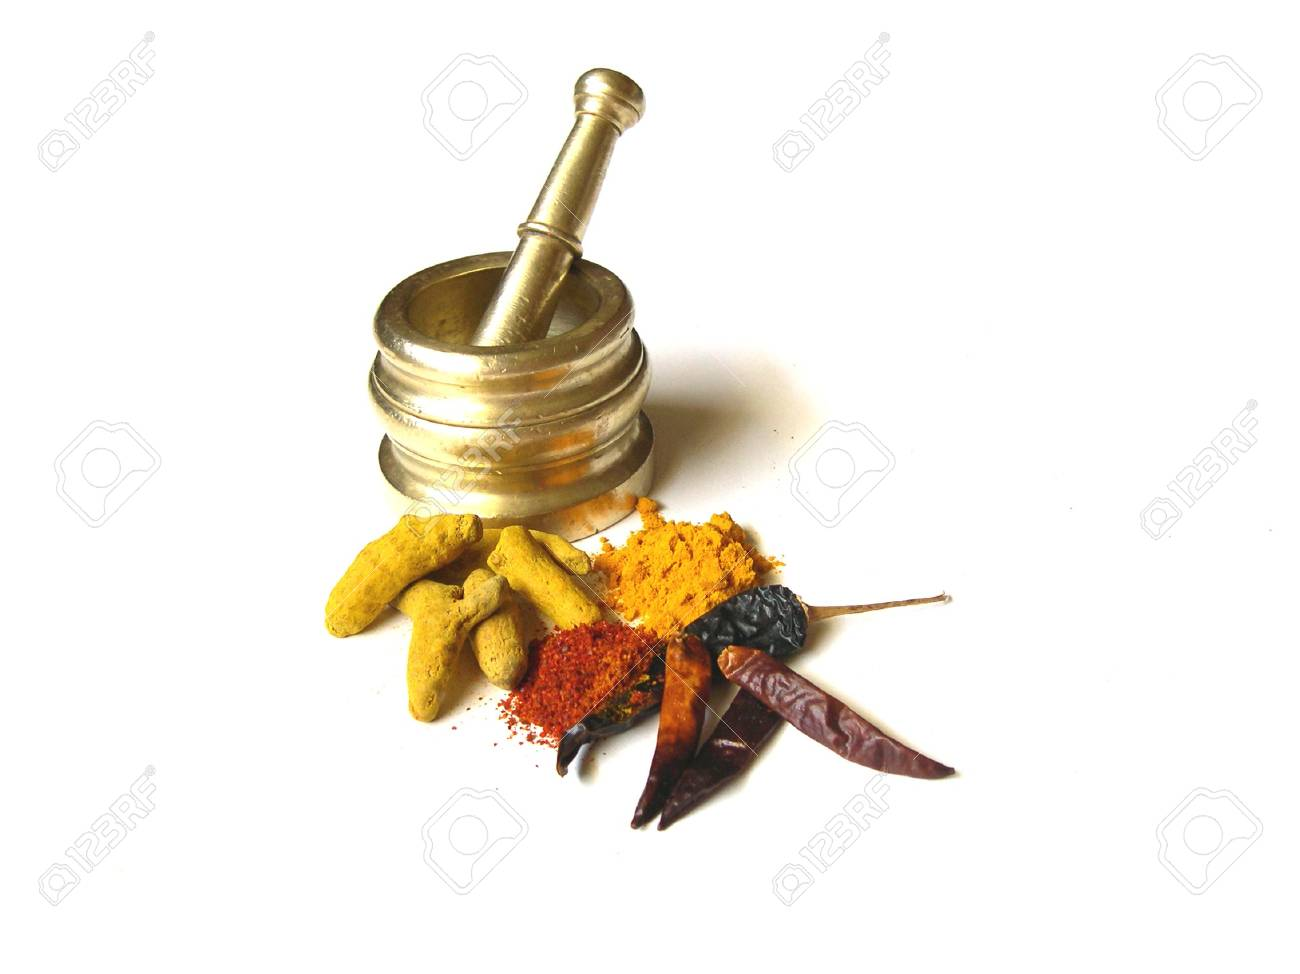 Chilies and Turmeric- Whole and Powdered with Mortar Stock Photo - 5277712